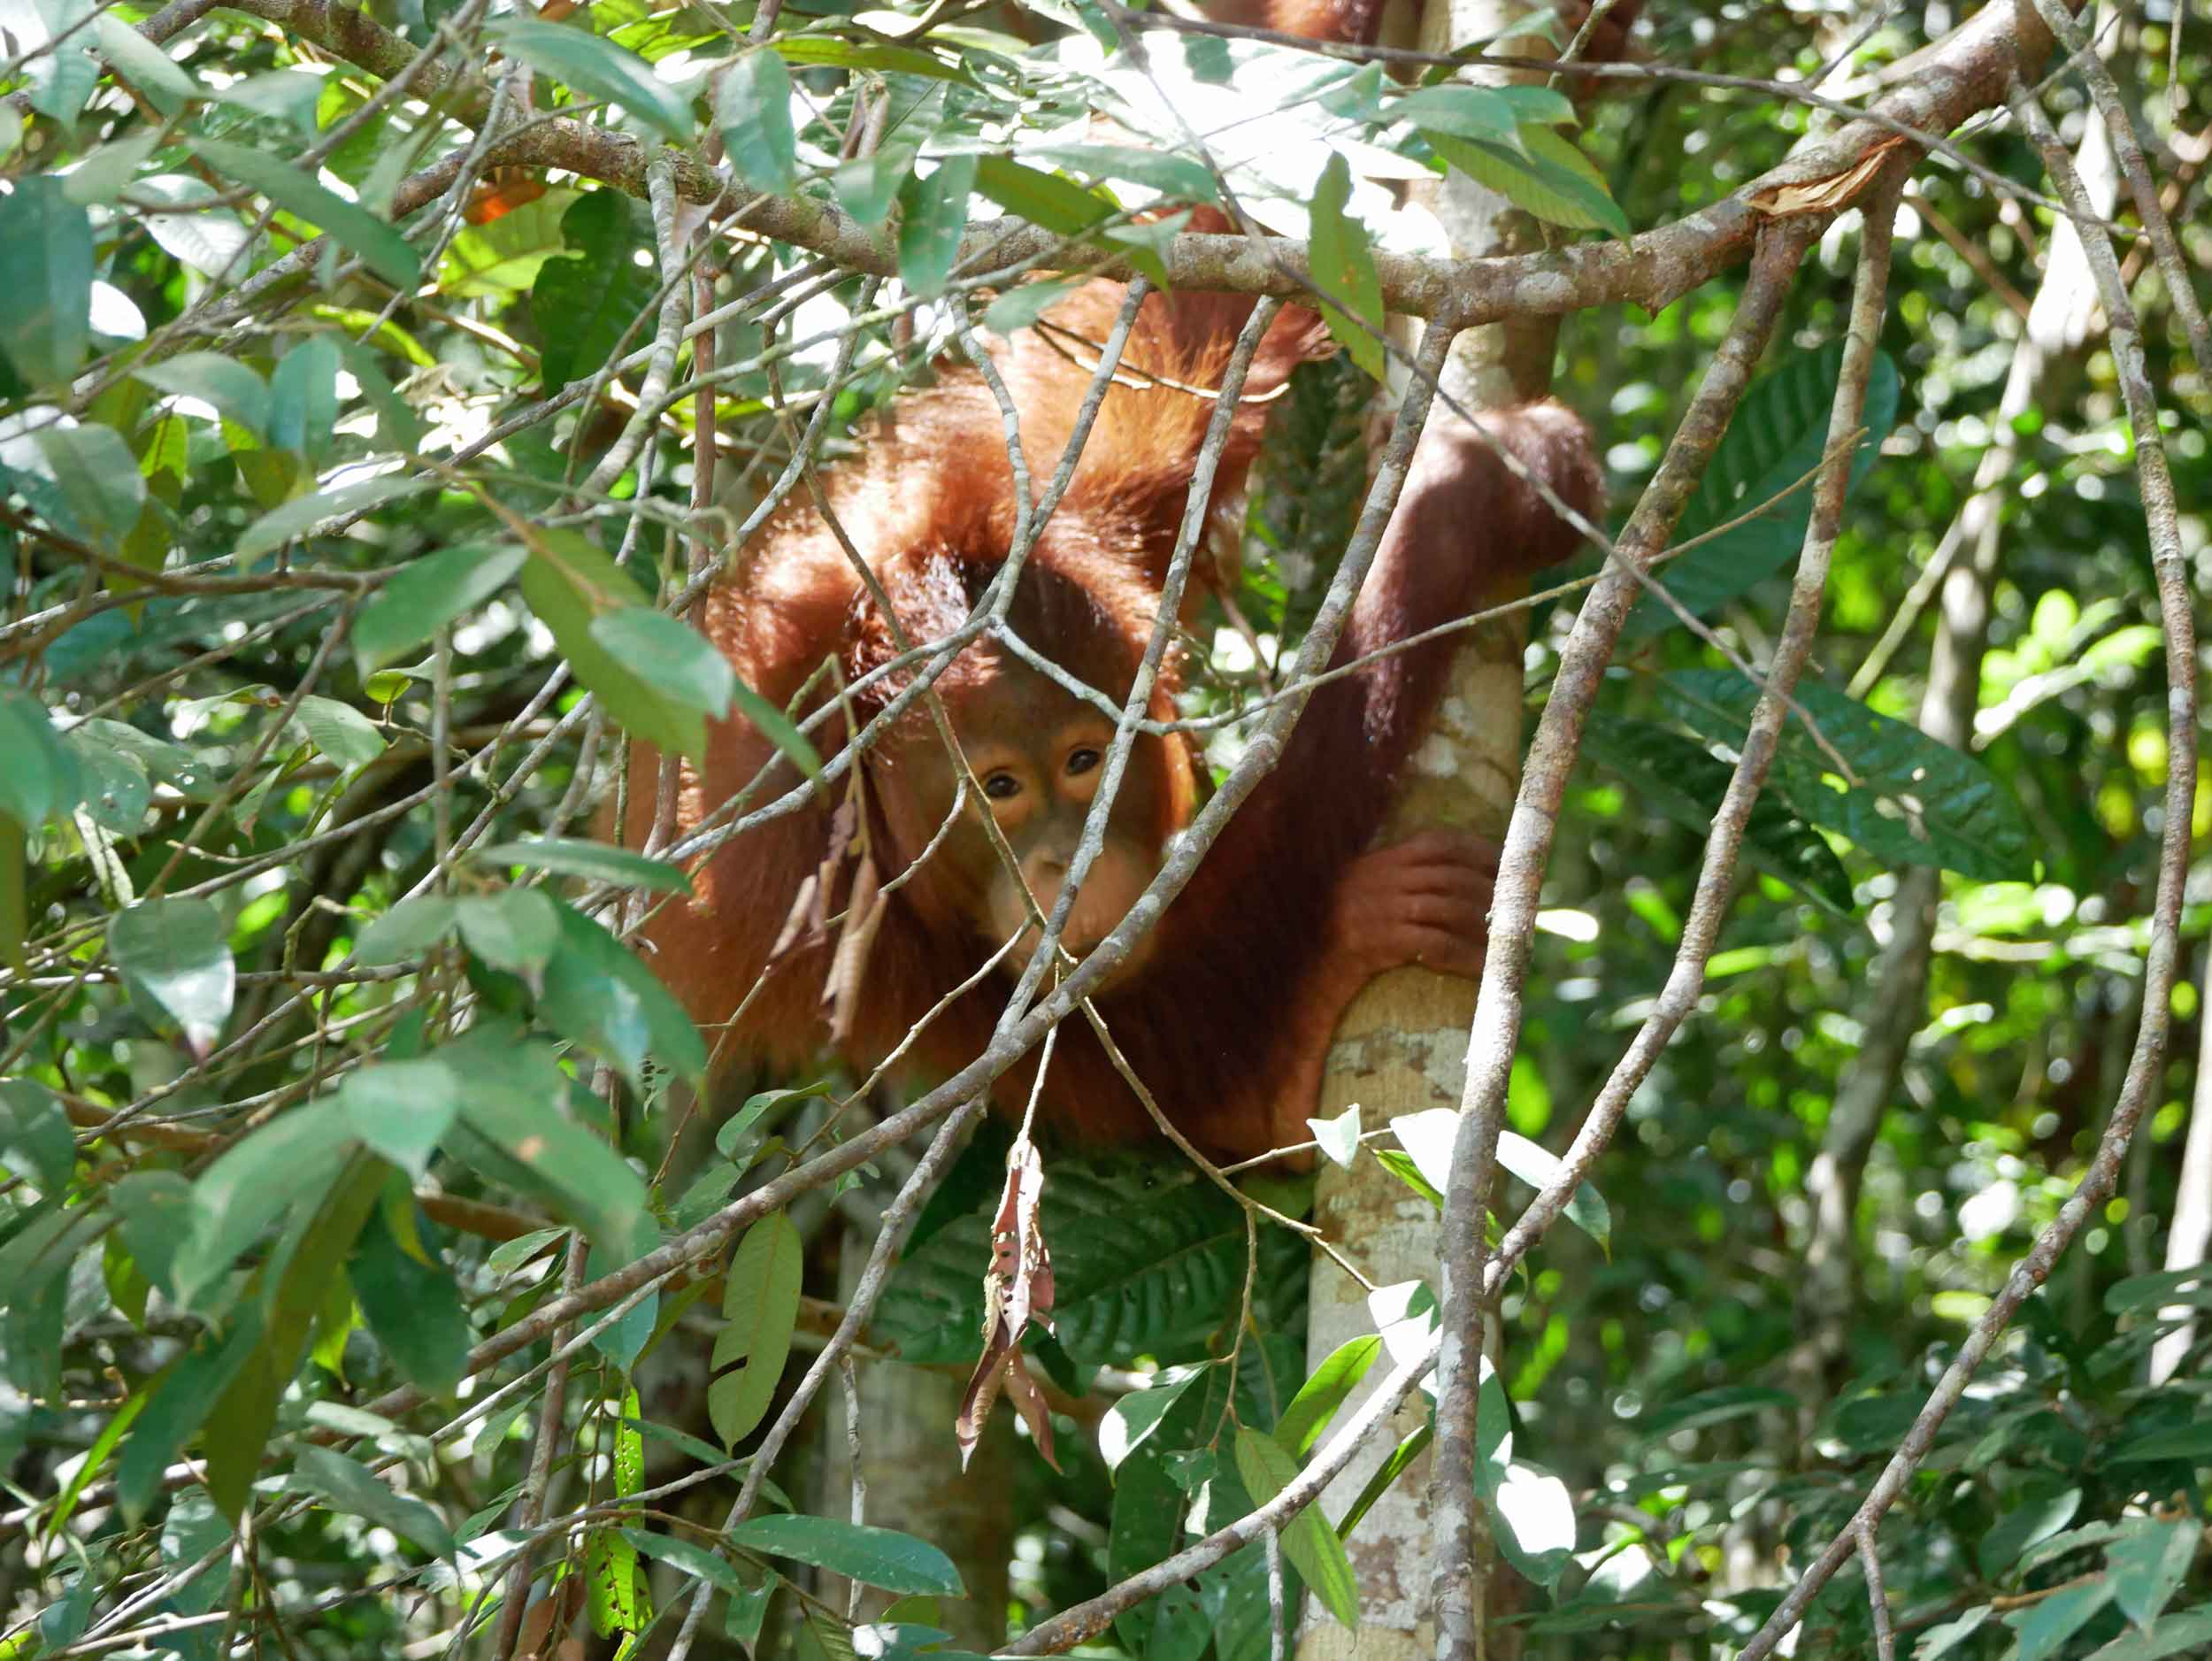 We later when to check out Matang Wildlife Center, which rehabilitates many different types of birds and animals, but were stalked by this young semi-wild orangutan who was up in the canopy.